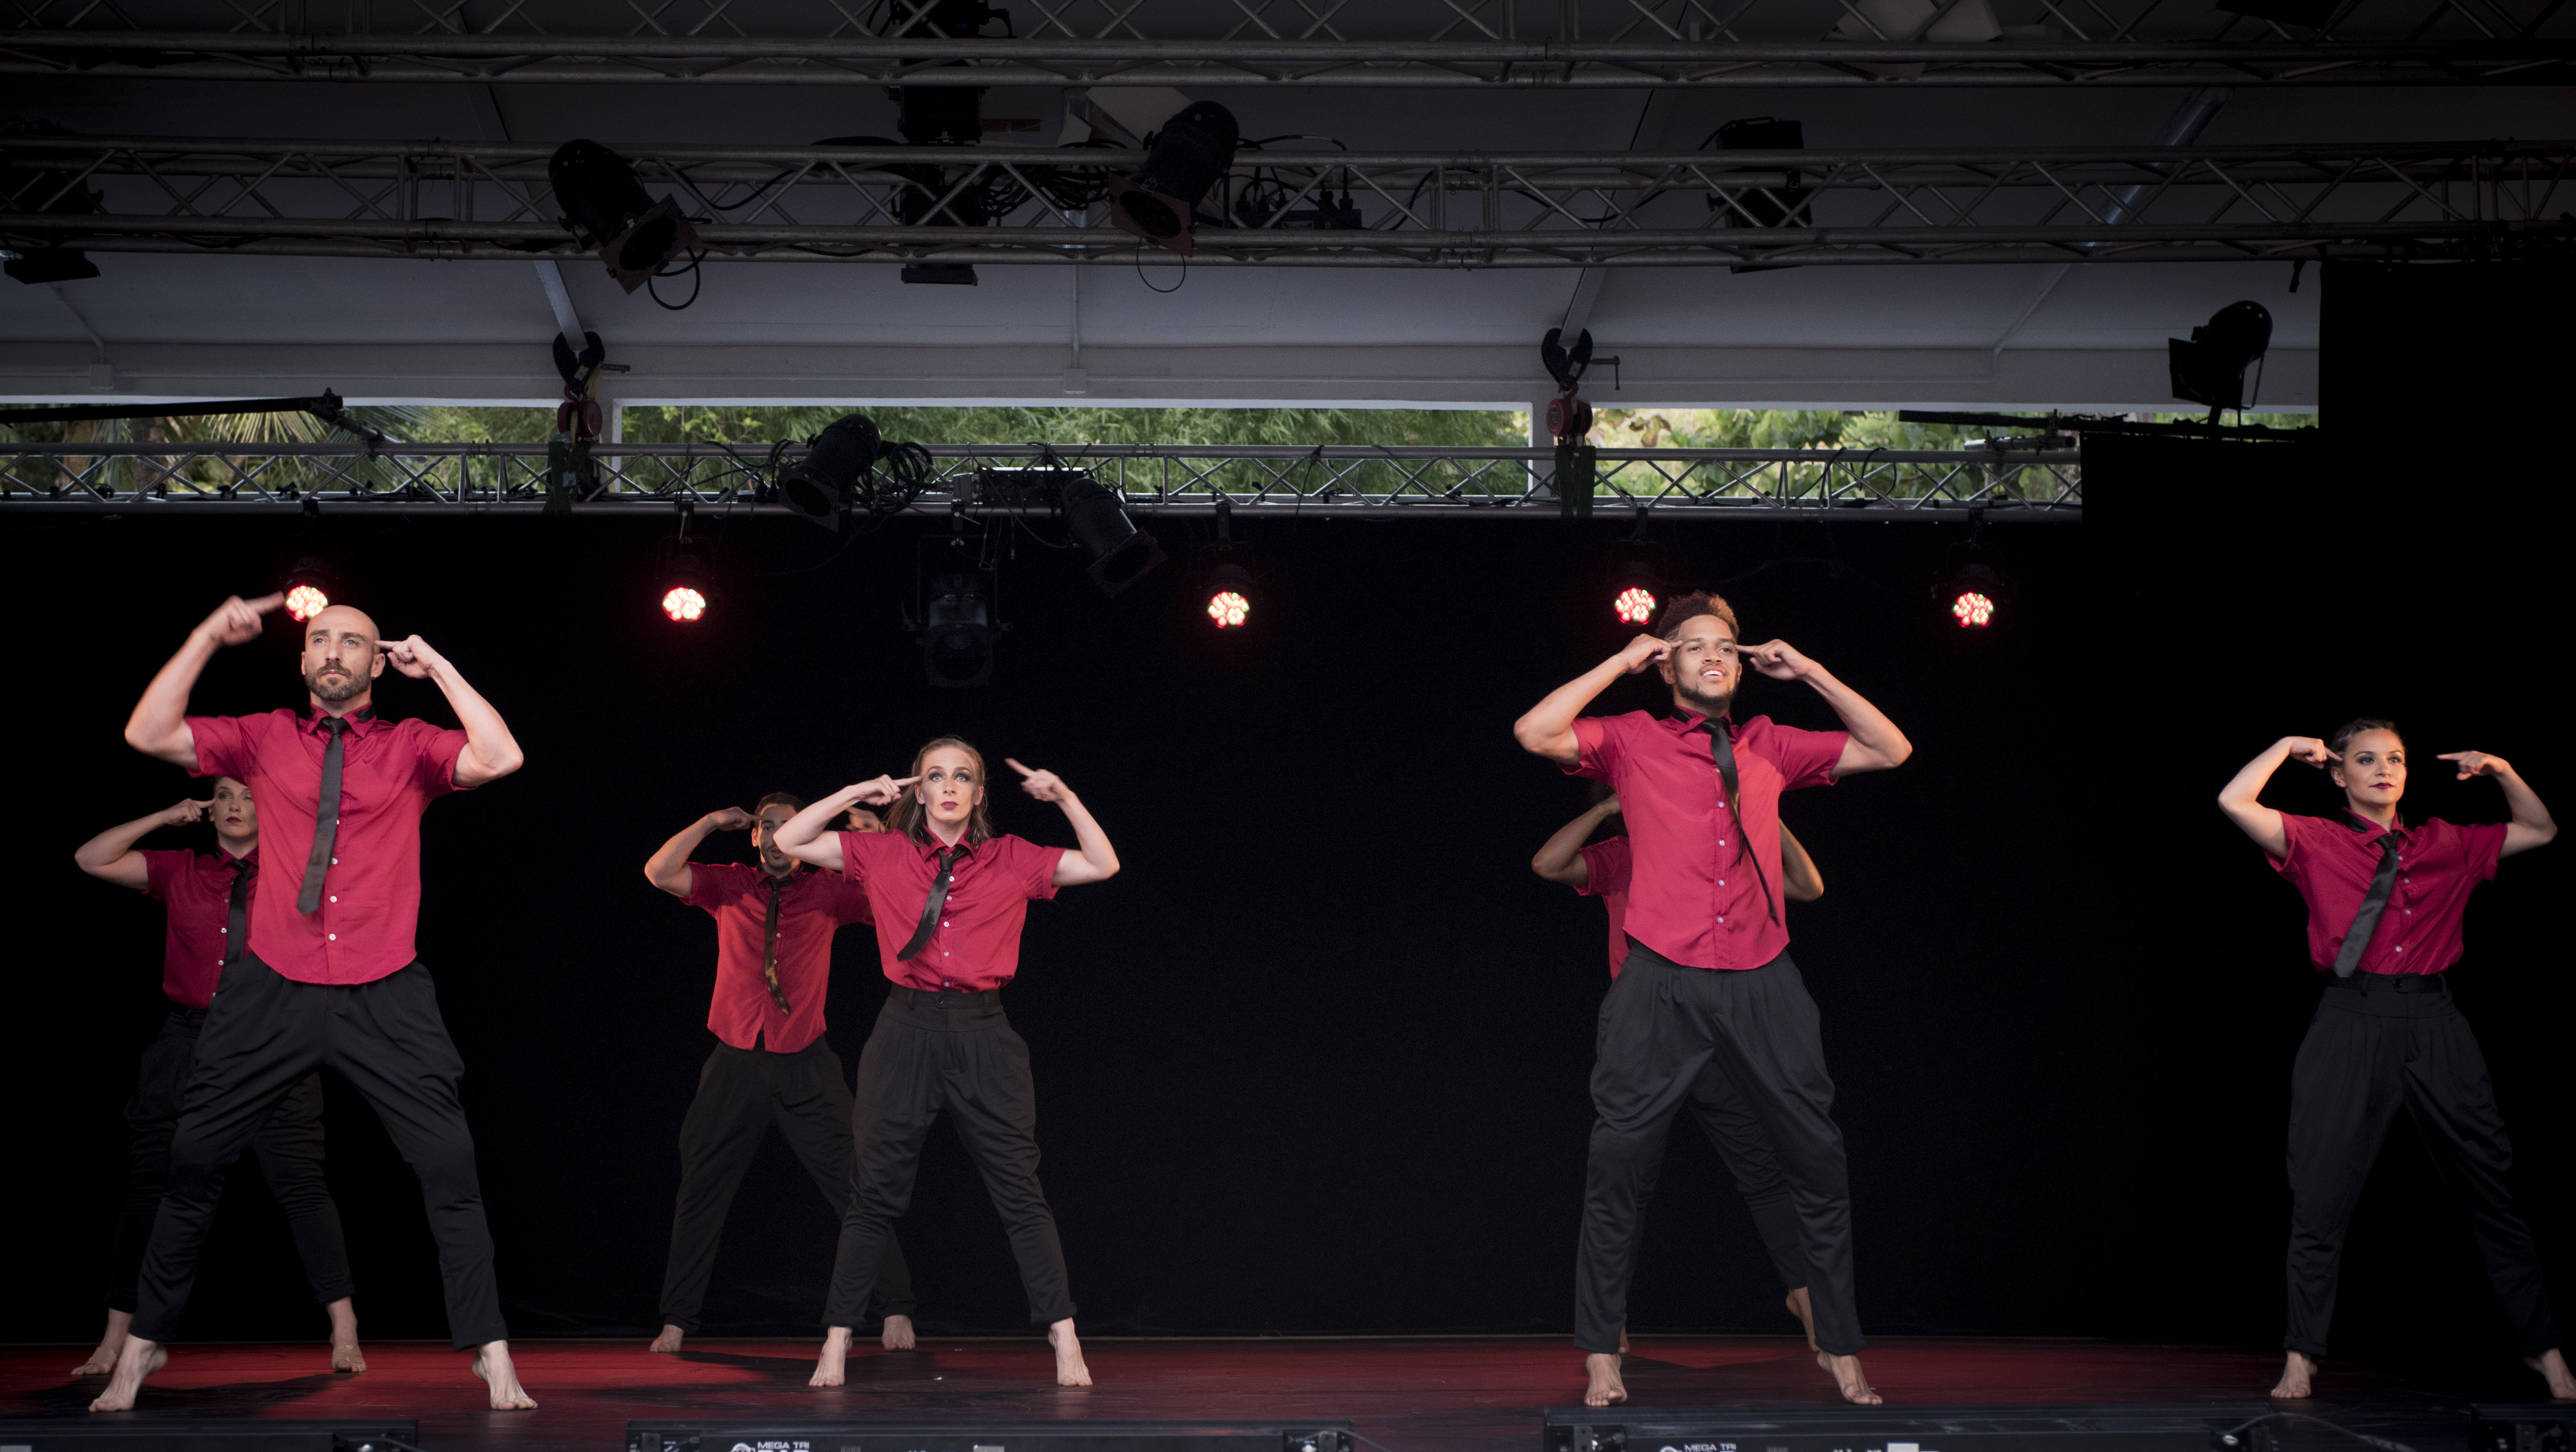 The Show_0012